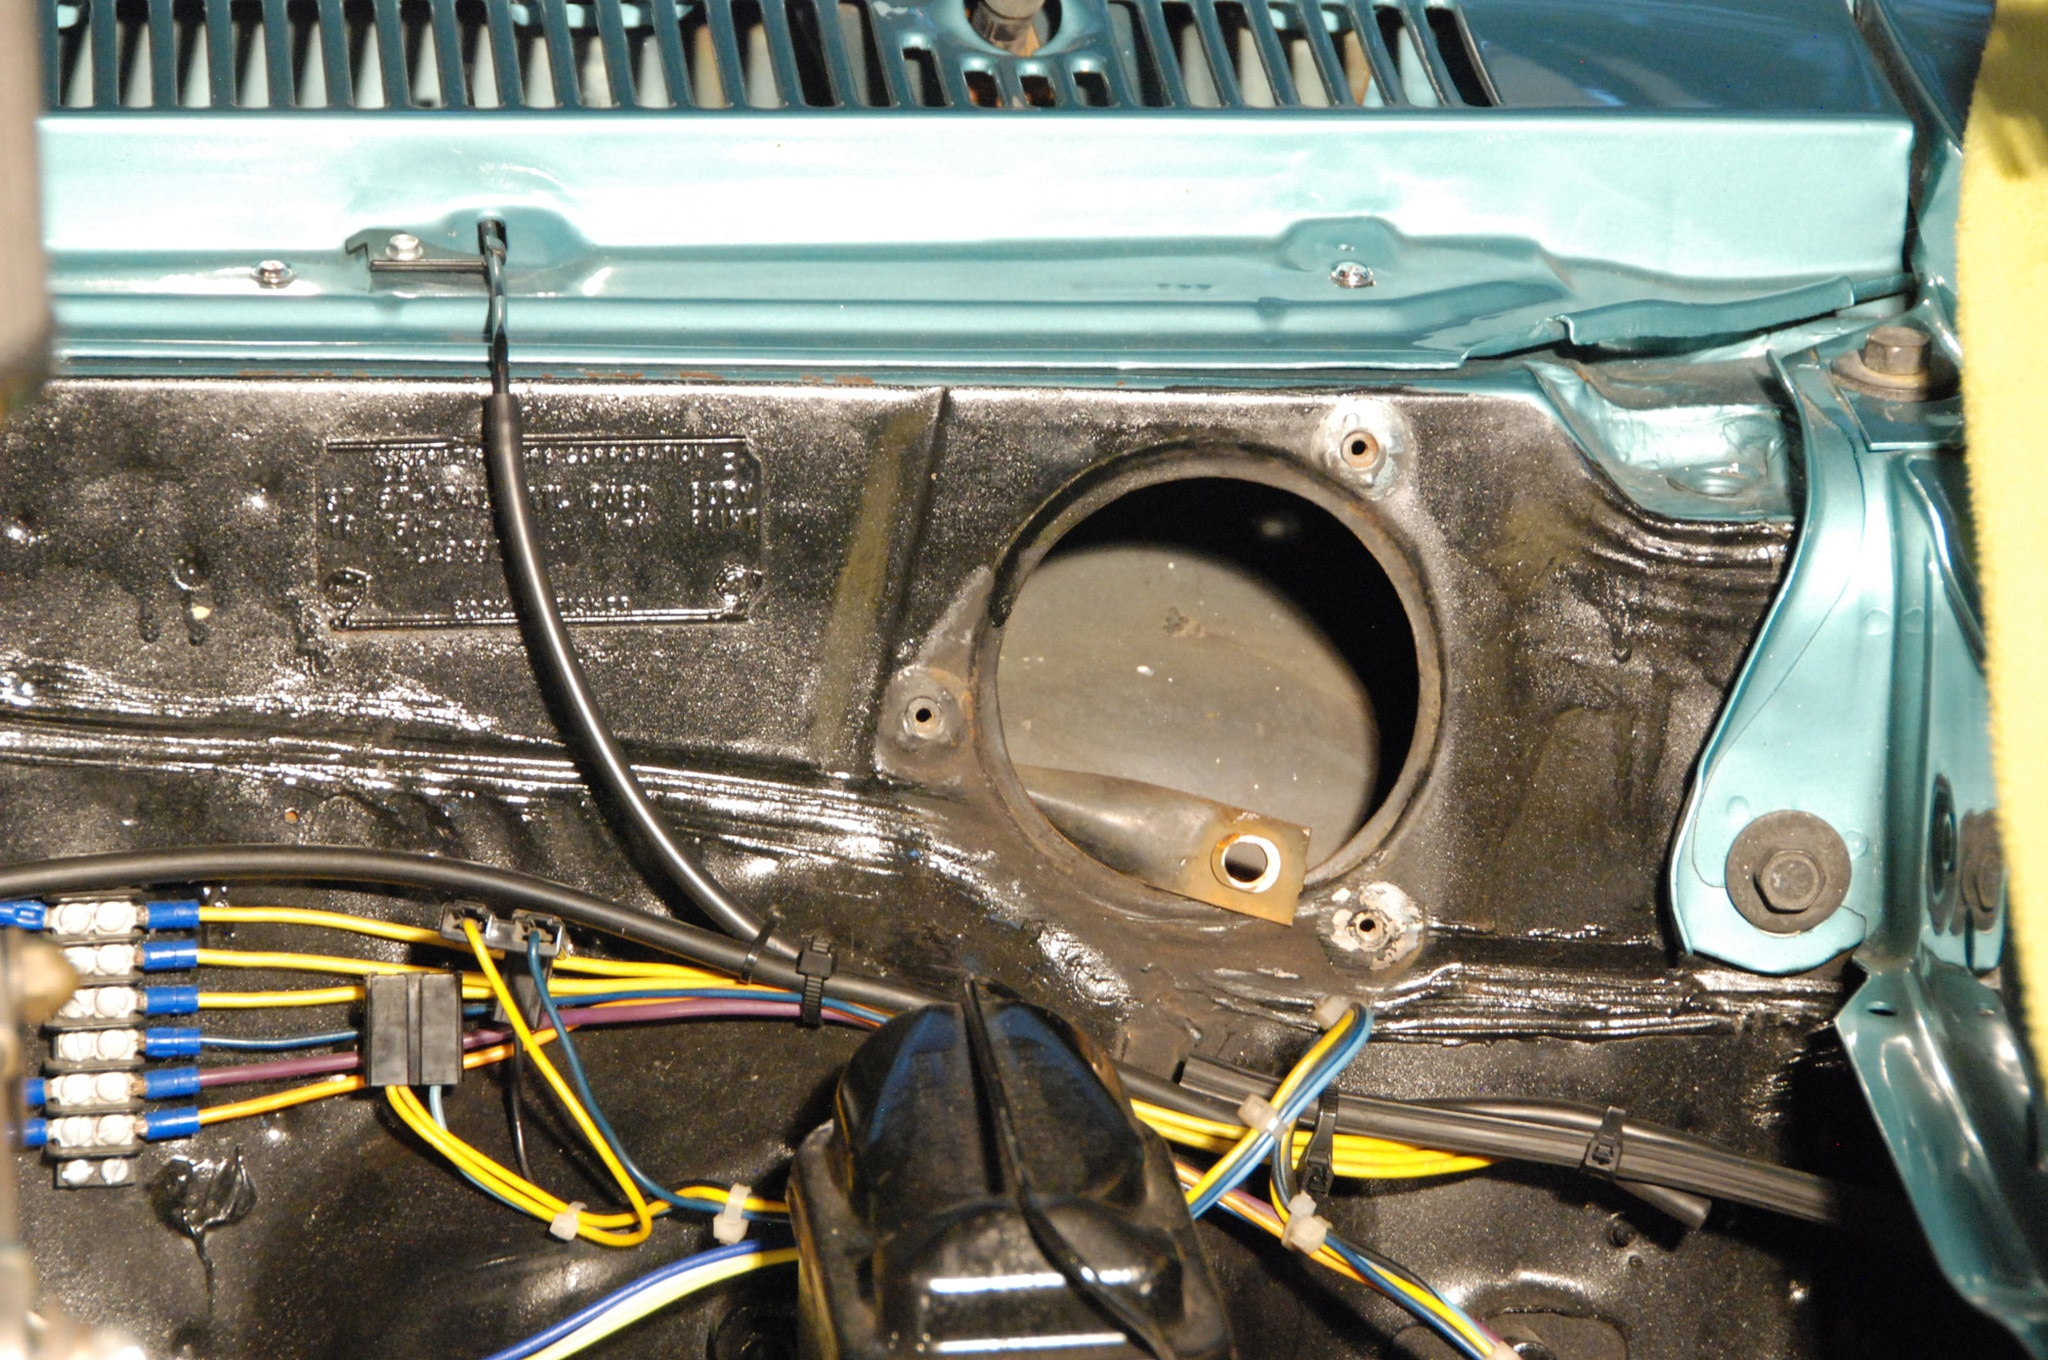 new port engineering wiper 1966 1967 chevelle 05 linkage arm?resize=665%2C442 66 chevelle wire harness super chevelle, custom chevelle, john 66 chevelle wiring harness at panicattacktreatment.co